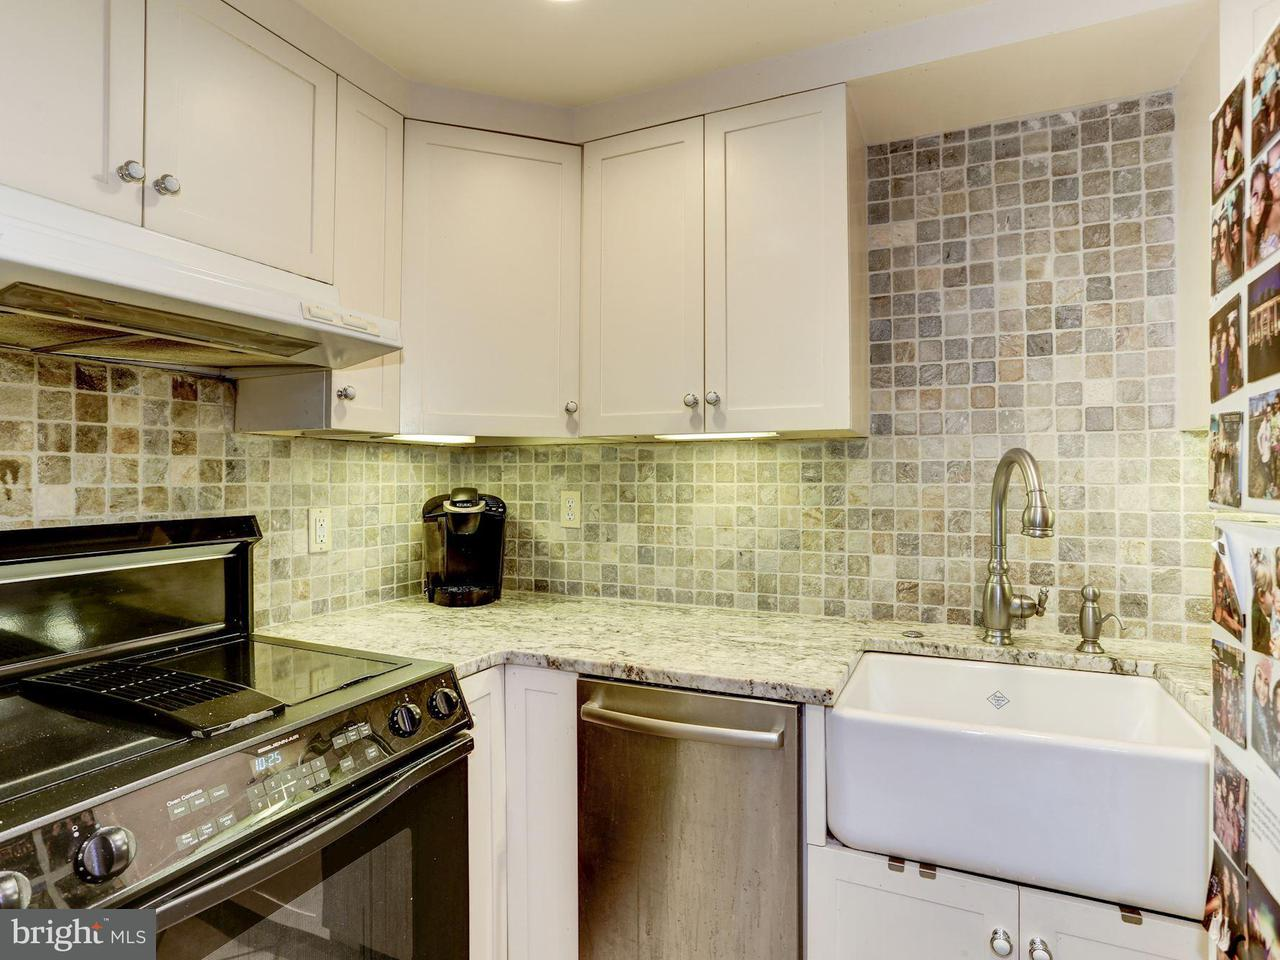 Additional photo for property listing at 3100 N St Nw #1 3100 N St Nw #1 Washington, 哥倫比亞特區 20007 美國